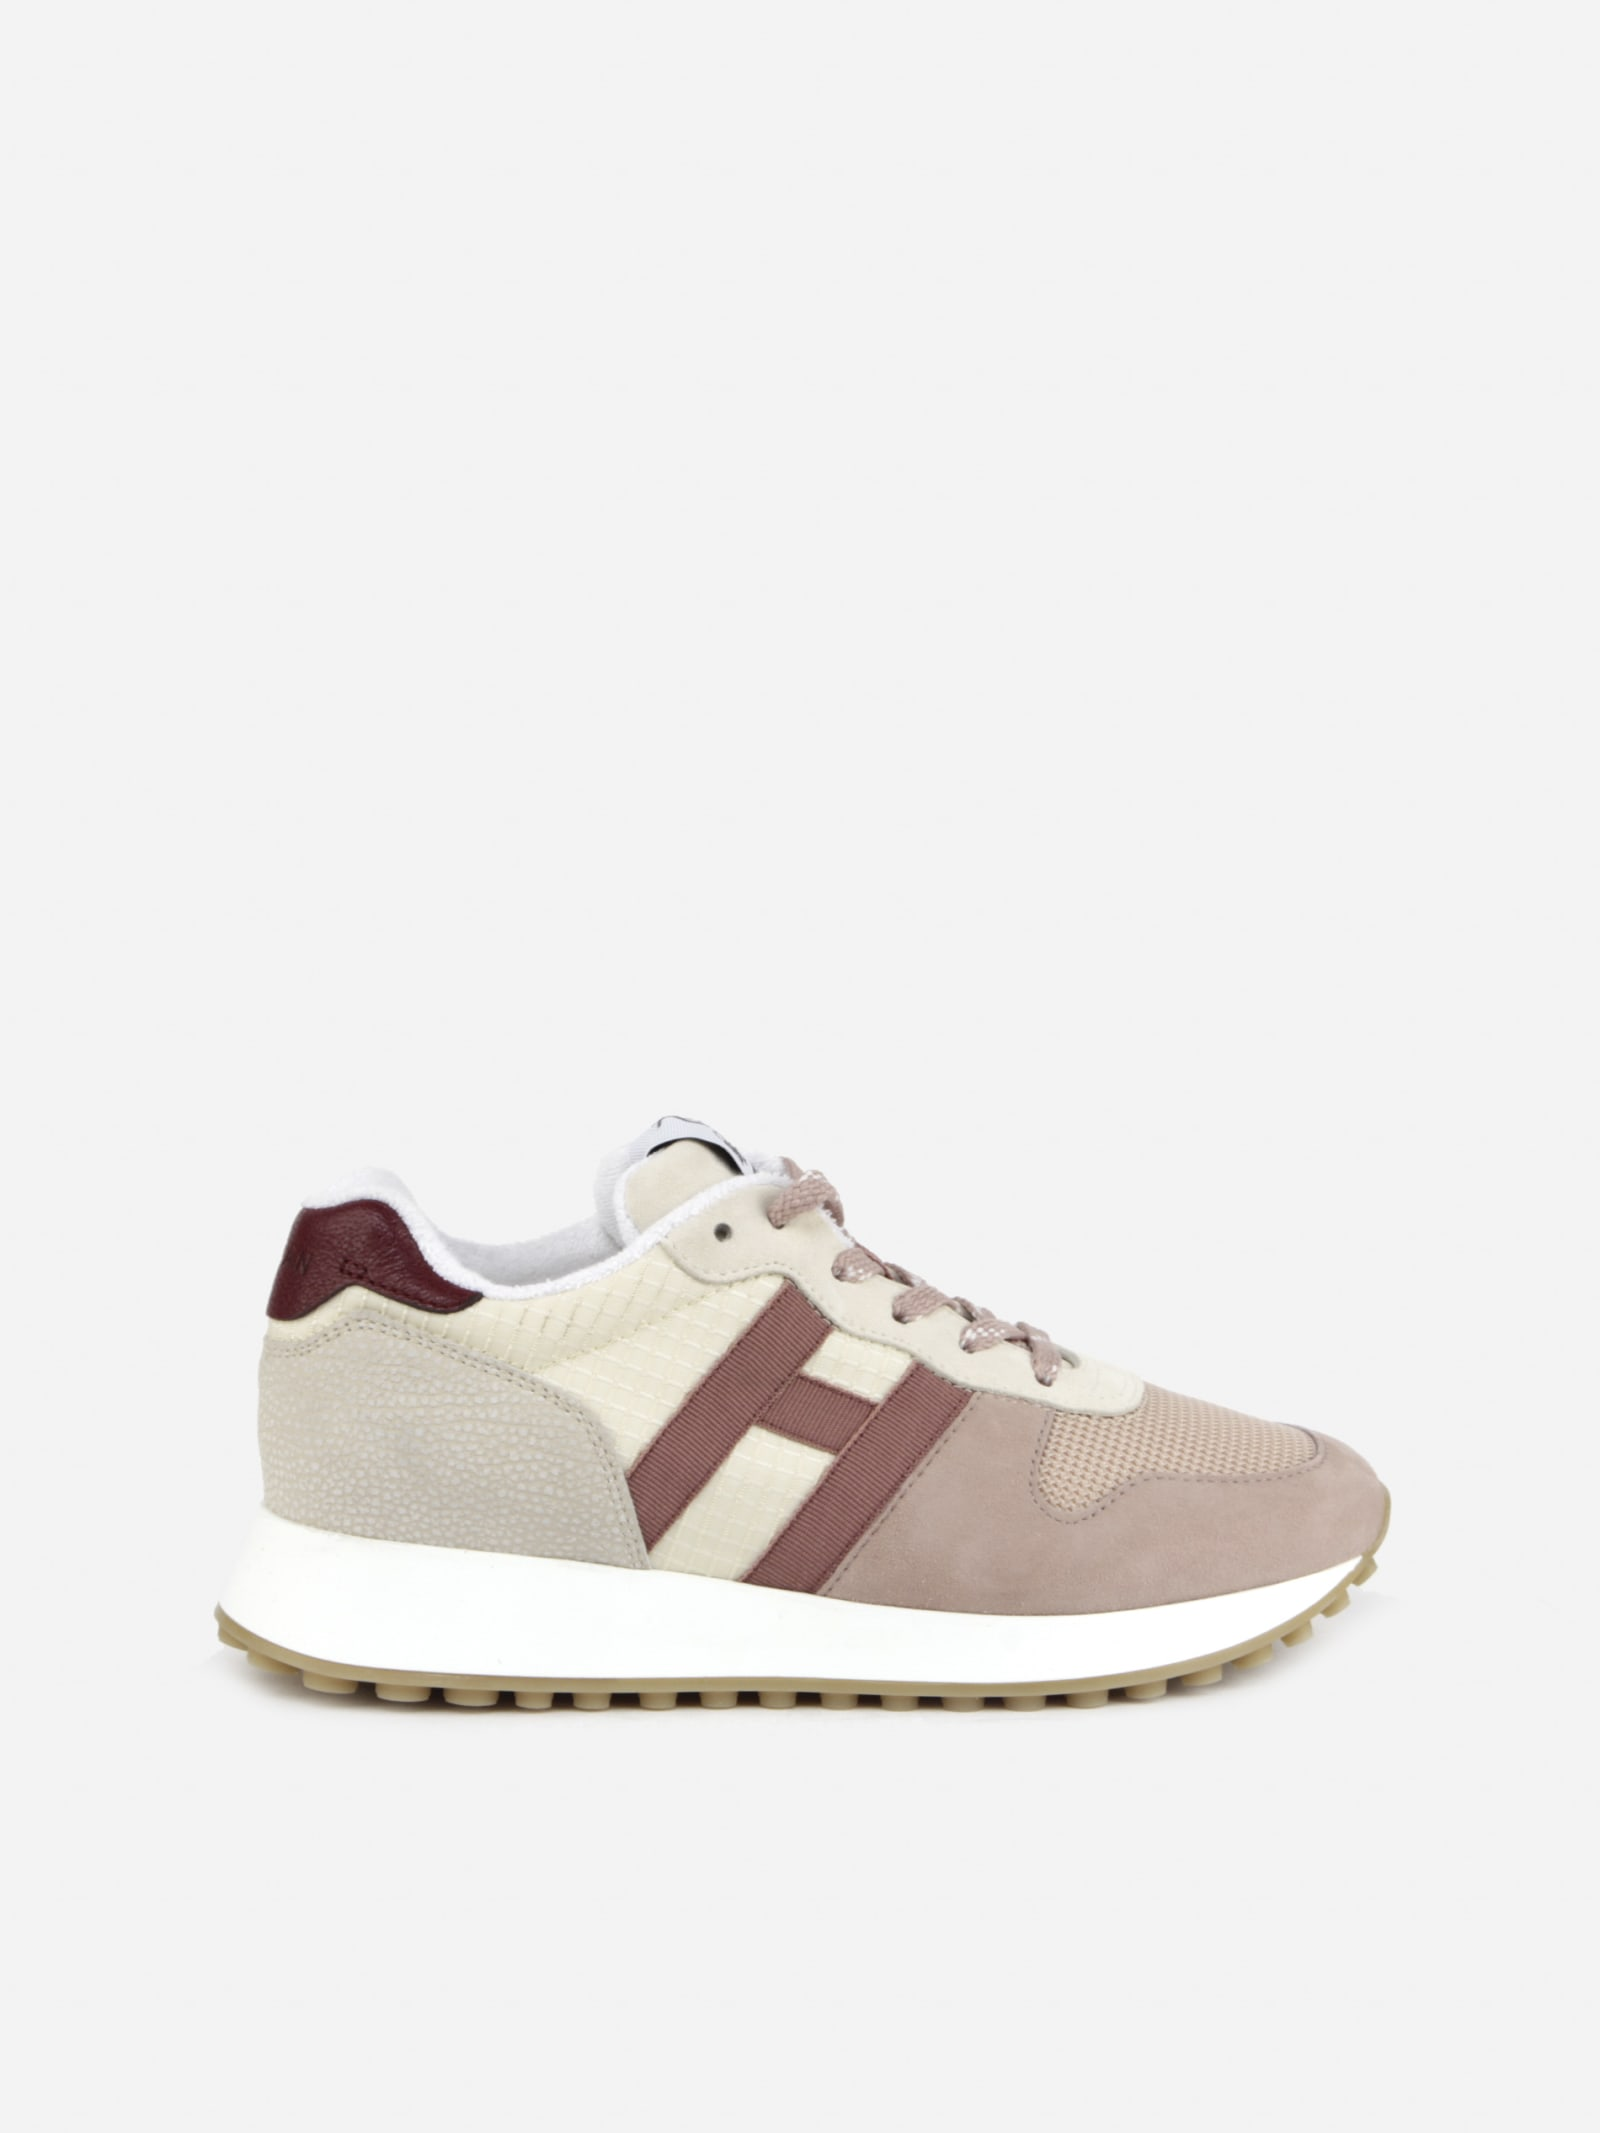 Hogan Sports H383 SNEAKERS IN SUEDE WITH TECHNICAL FABRIC INSERTS